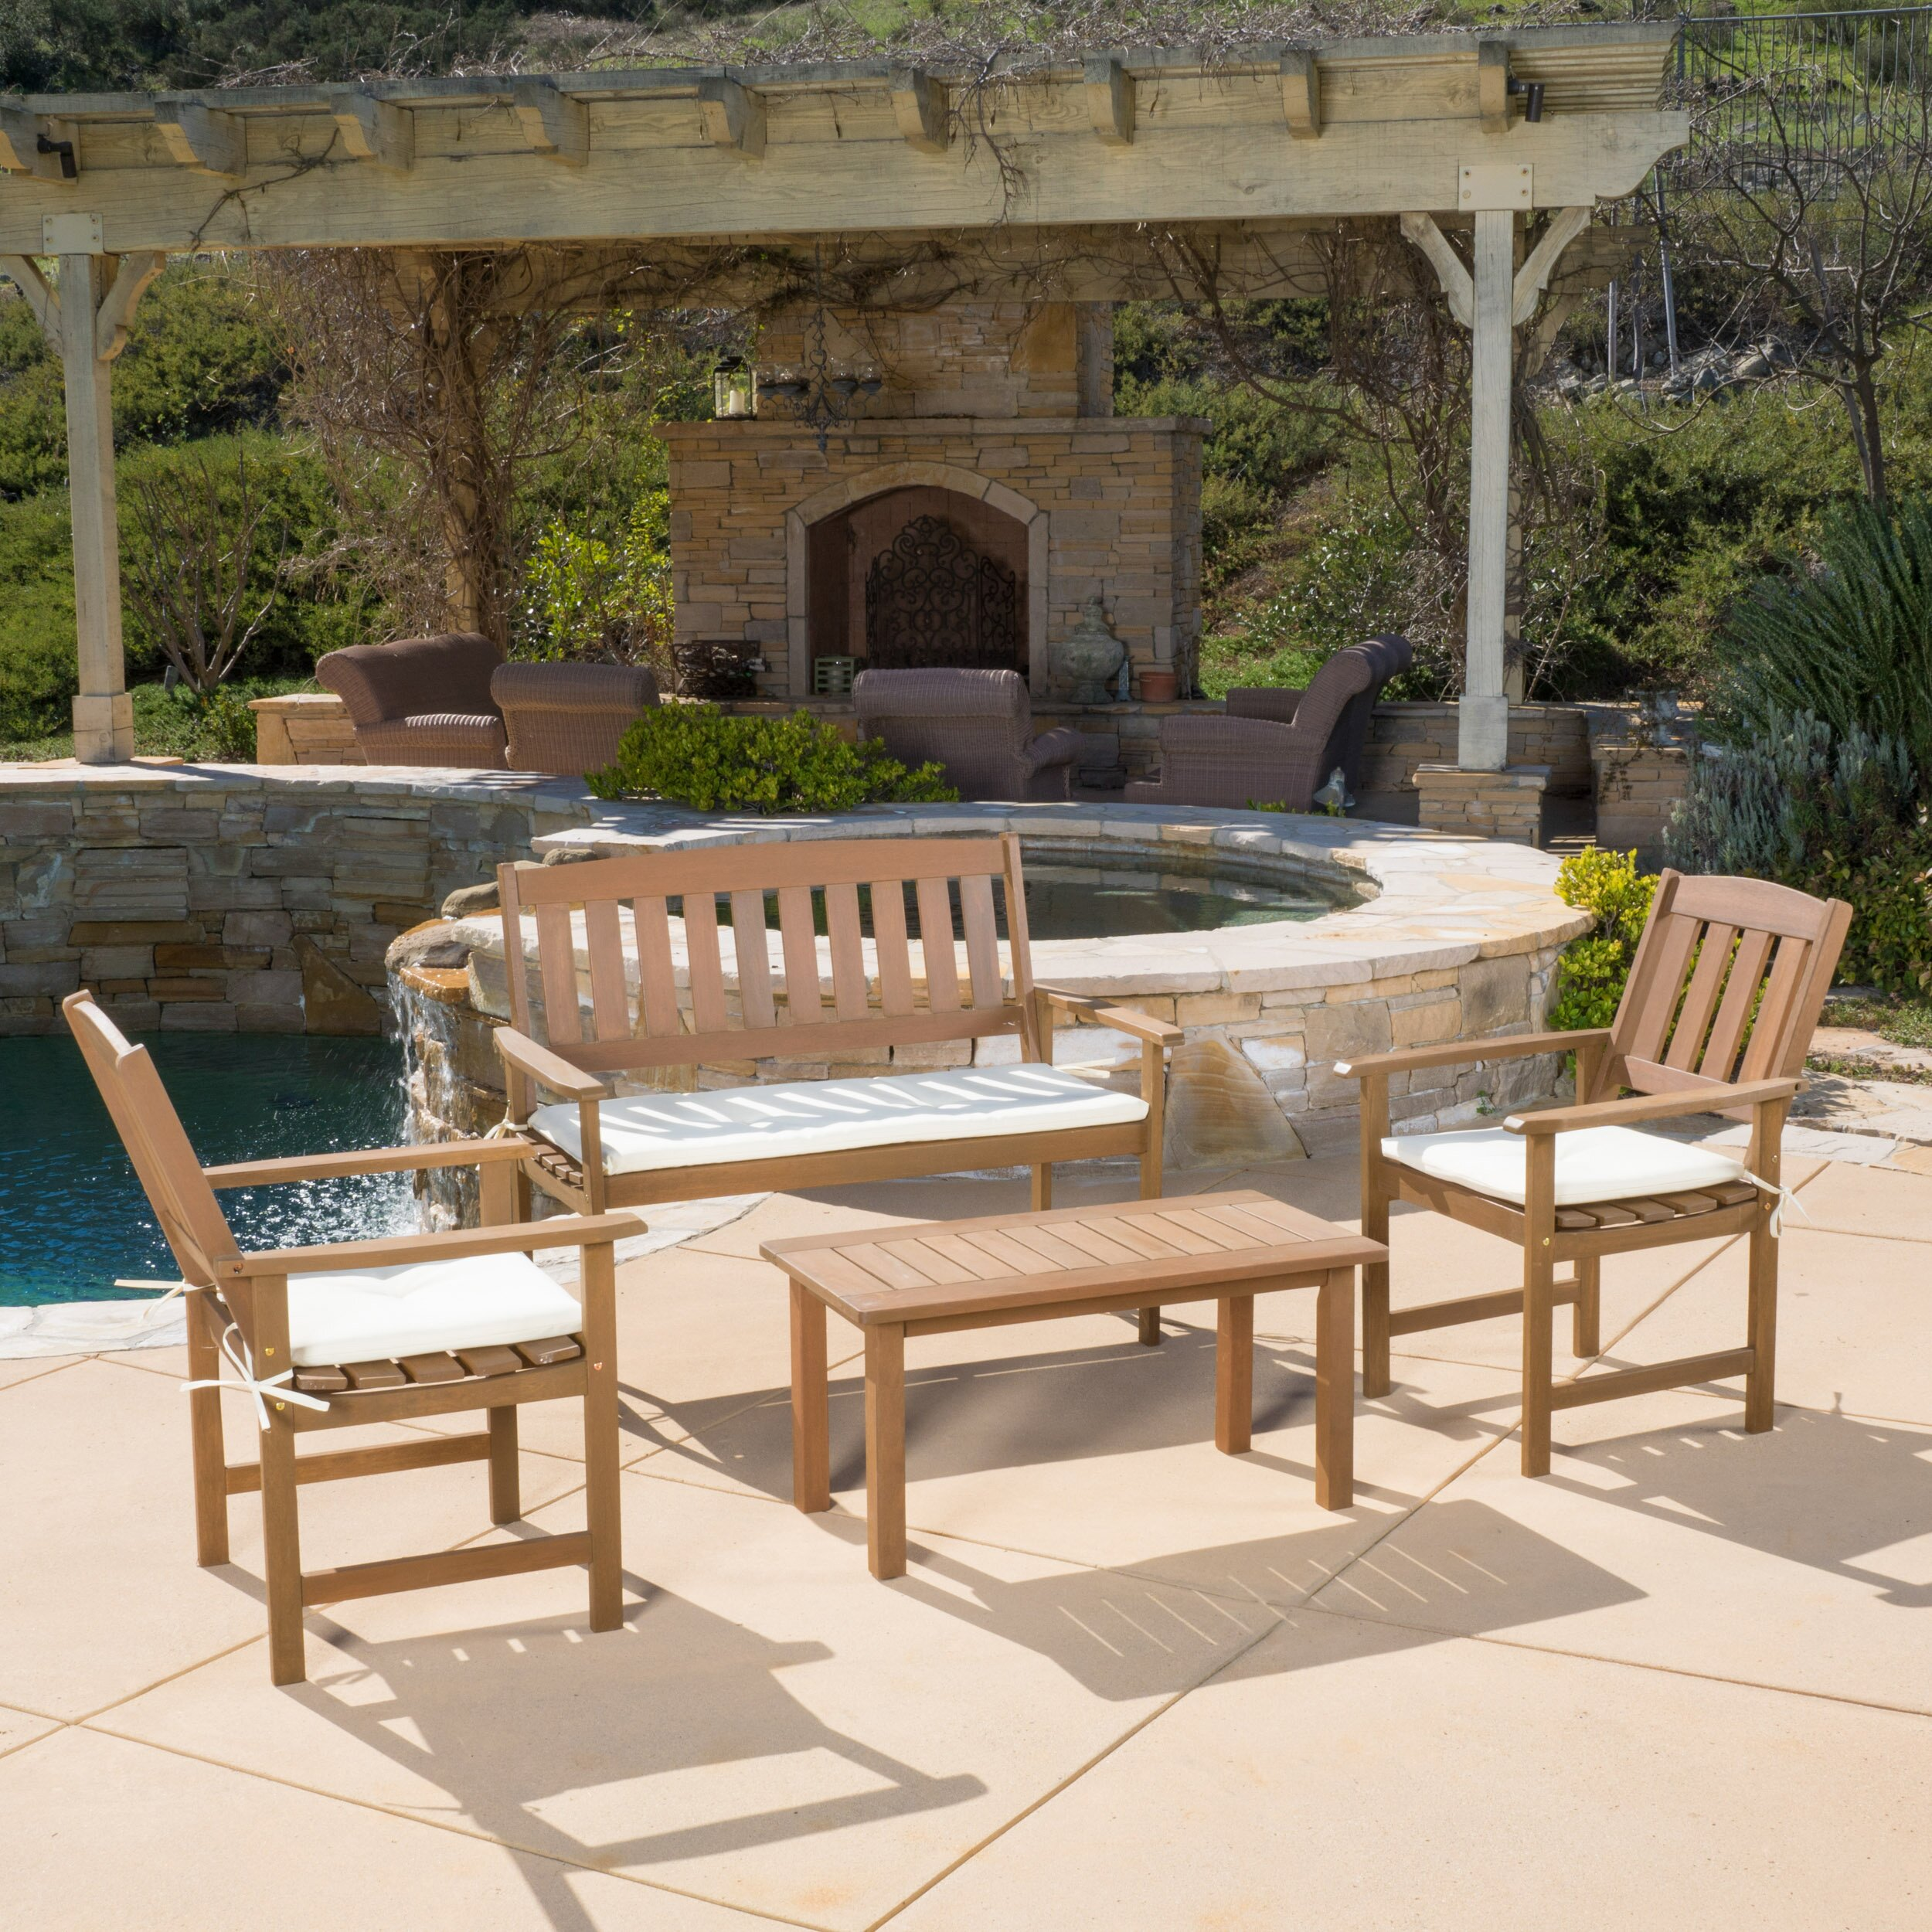 ollies patio furniture 28 images ollies patio furniture 28